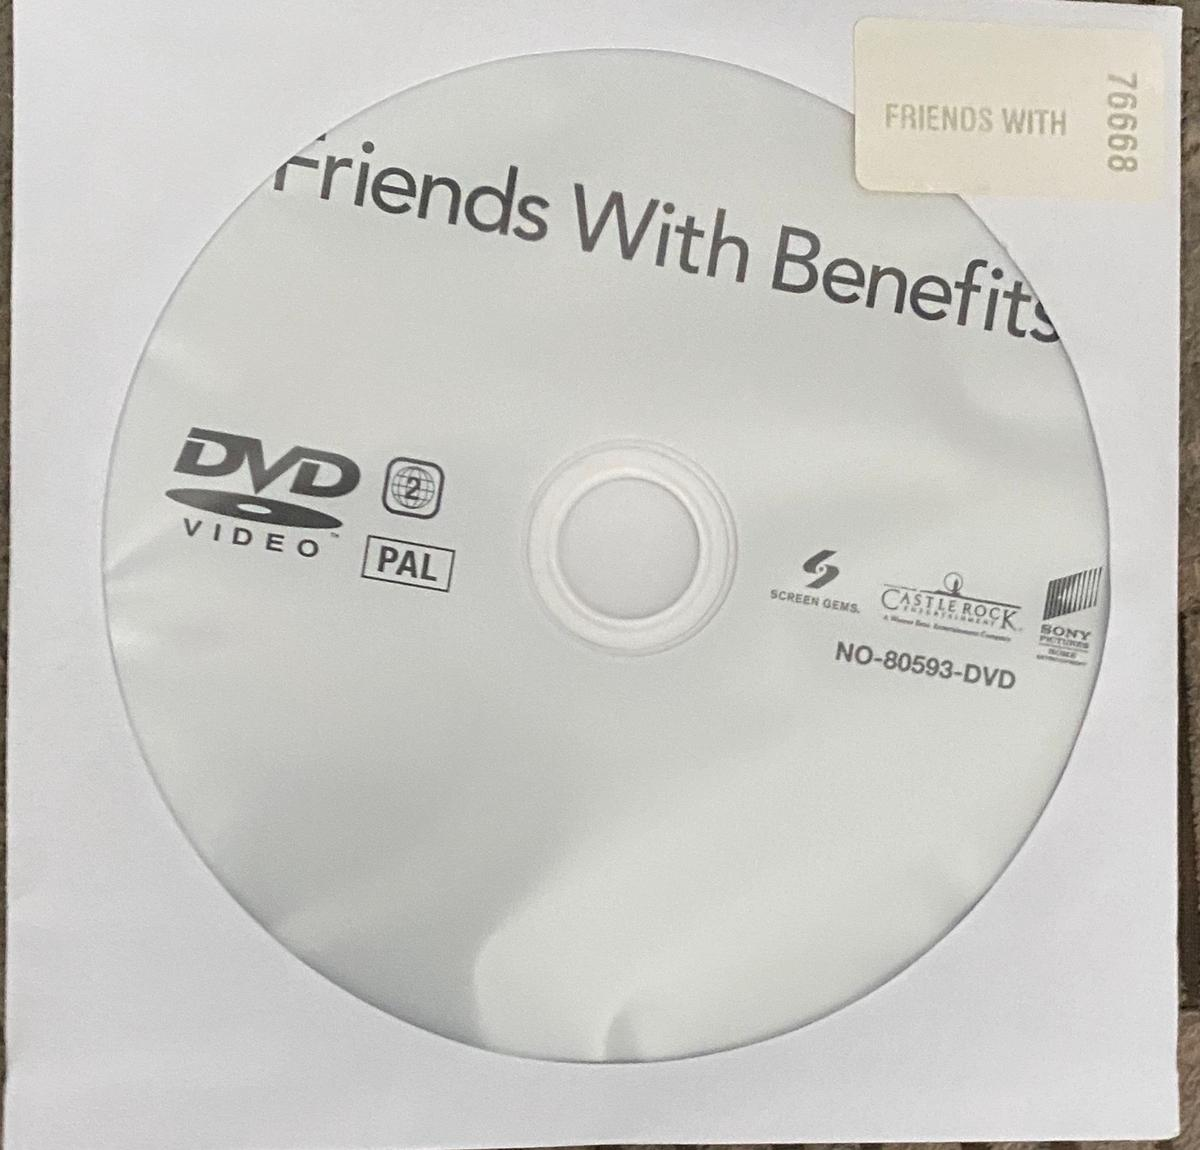 This is for a genuine friend with benefits Dvd movie   DVD DISC ONLY